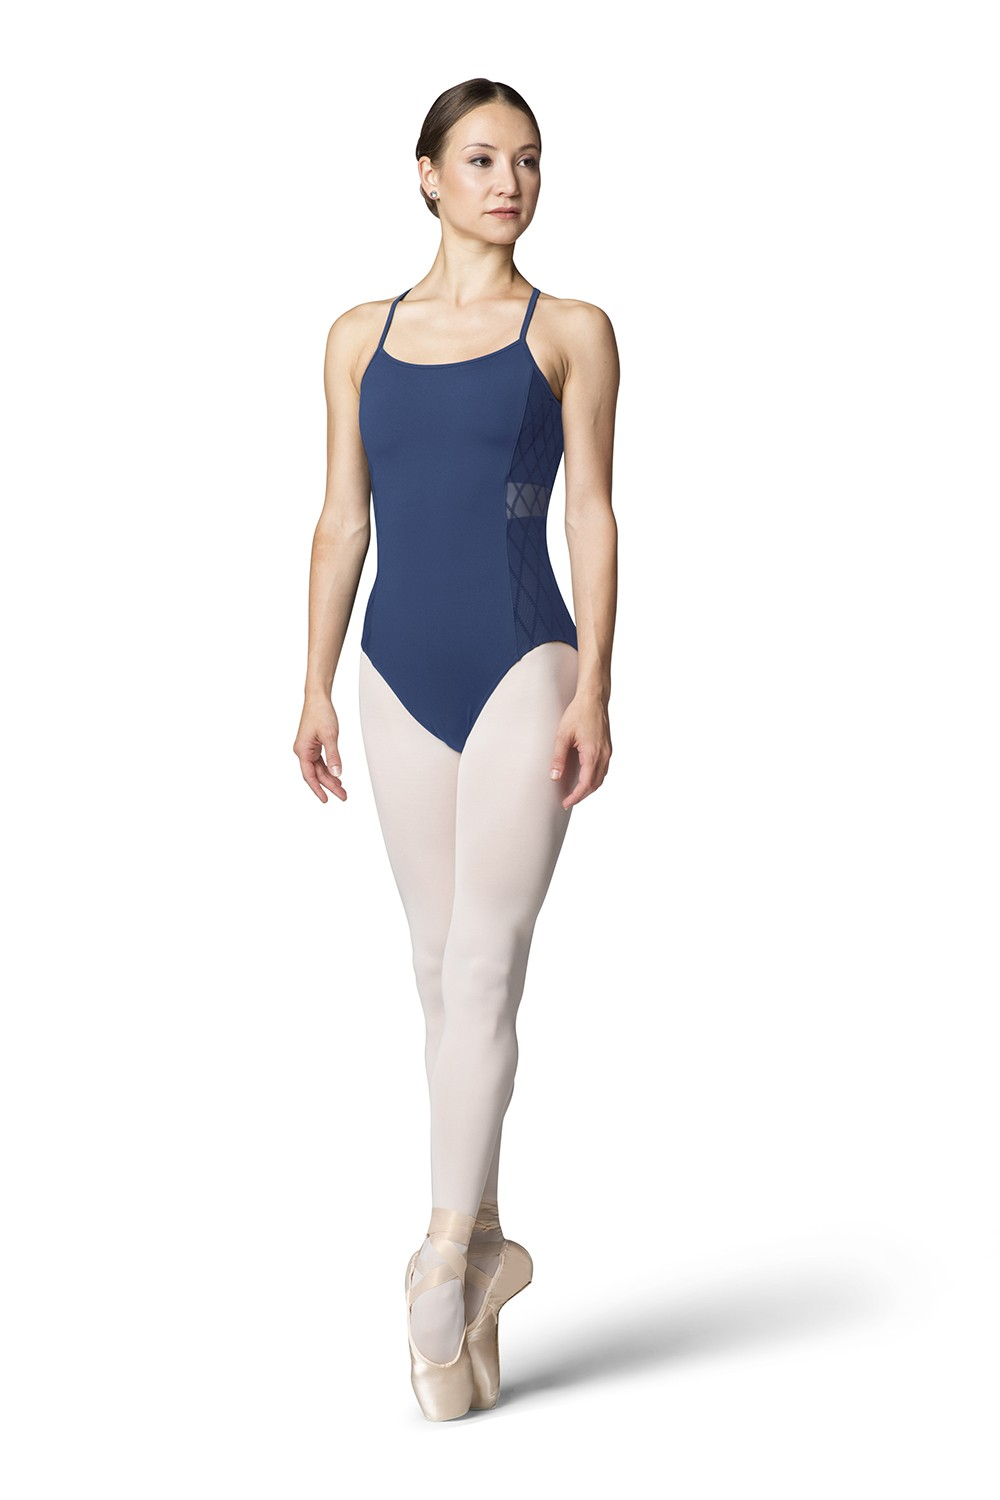 Carissa Womens Camisole Leotards